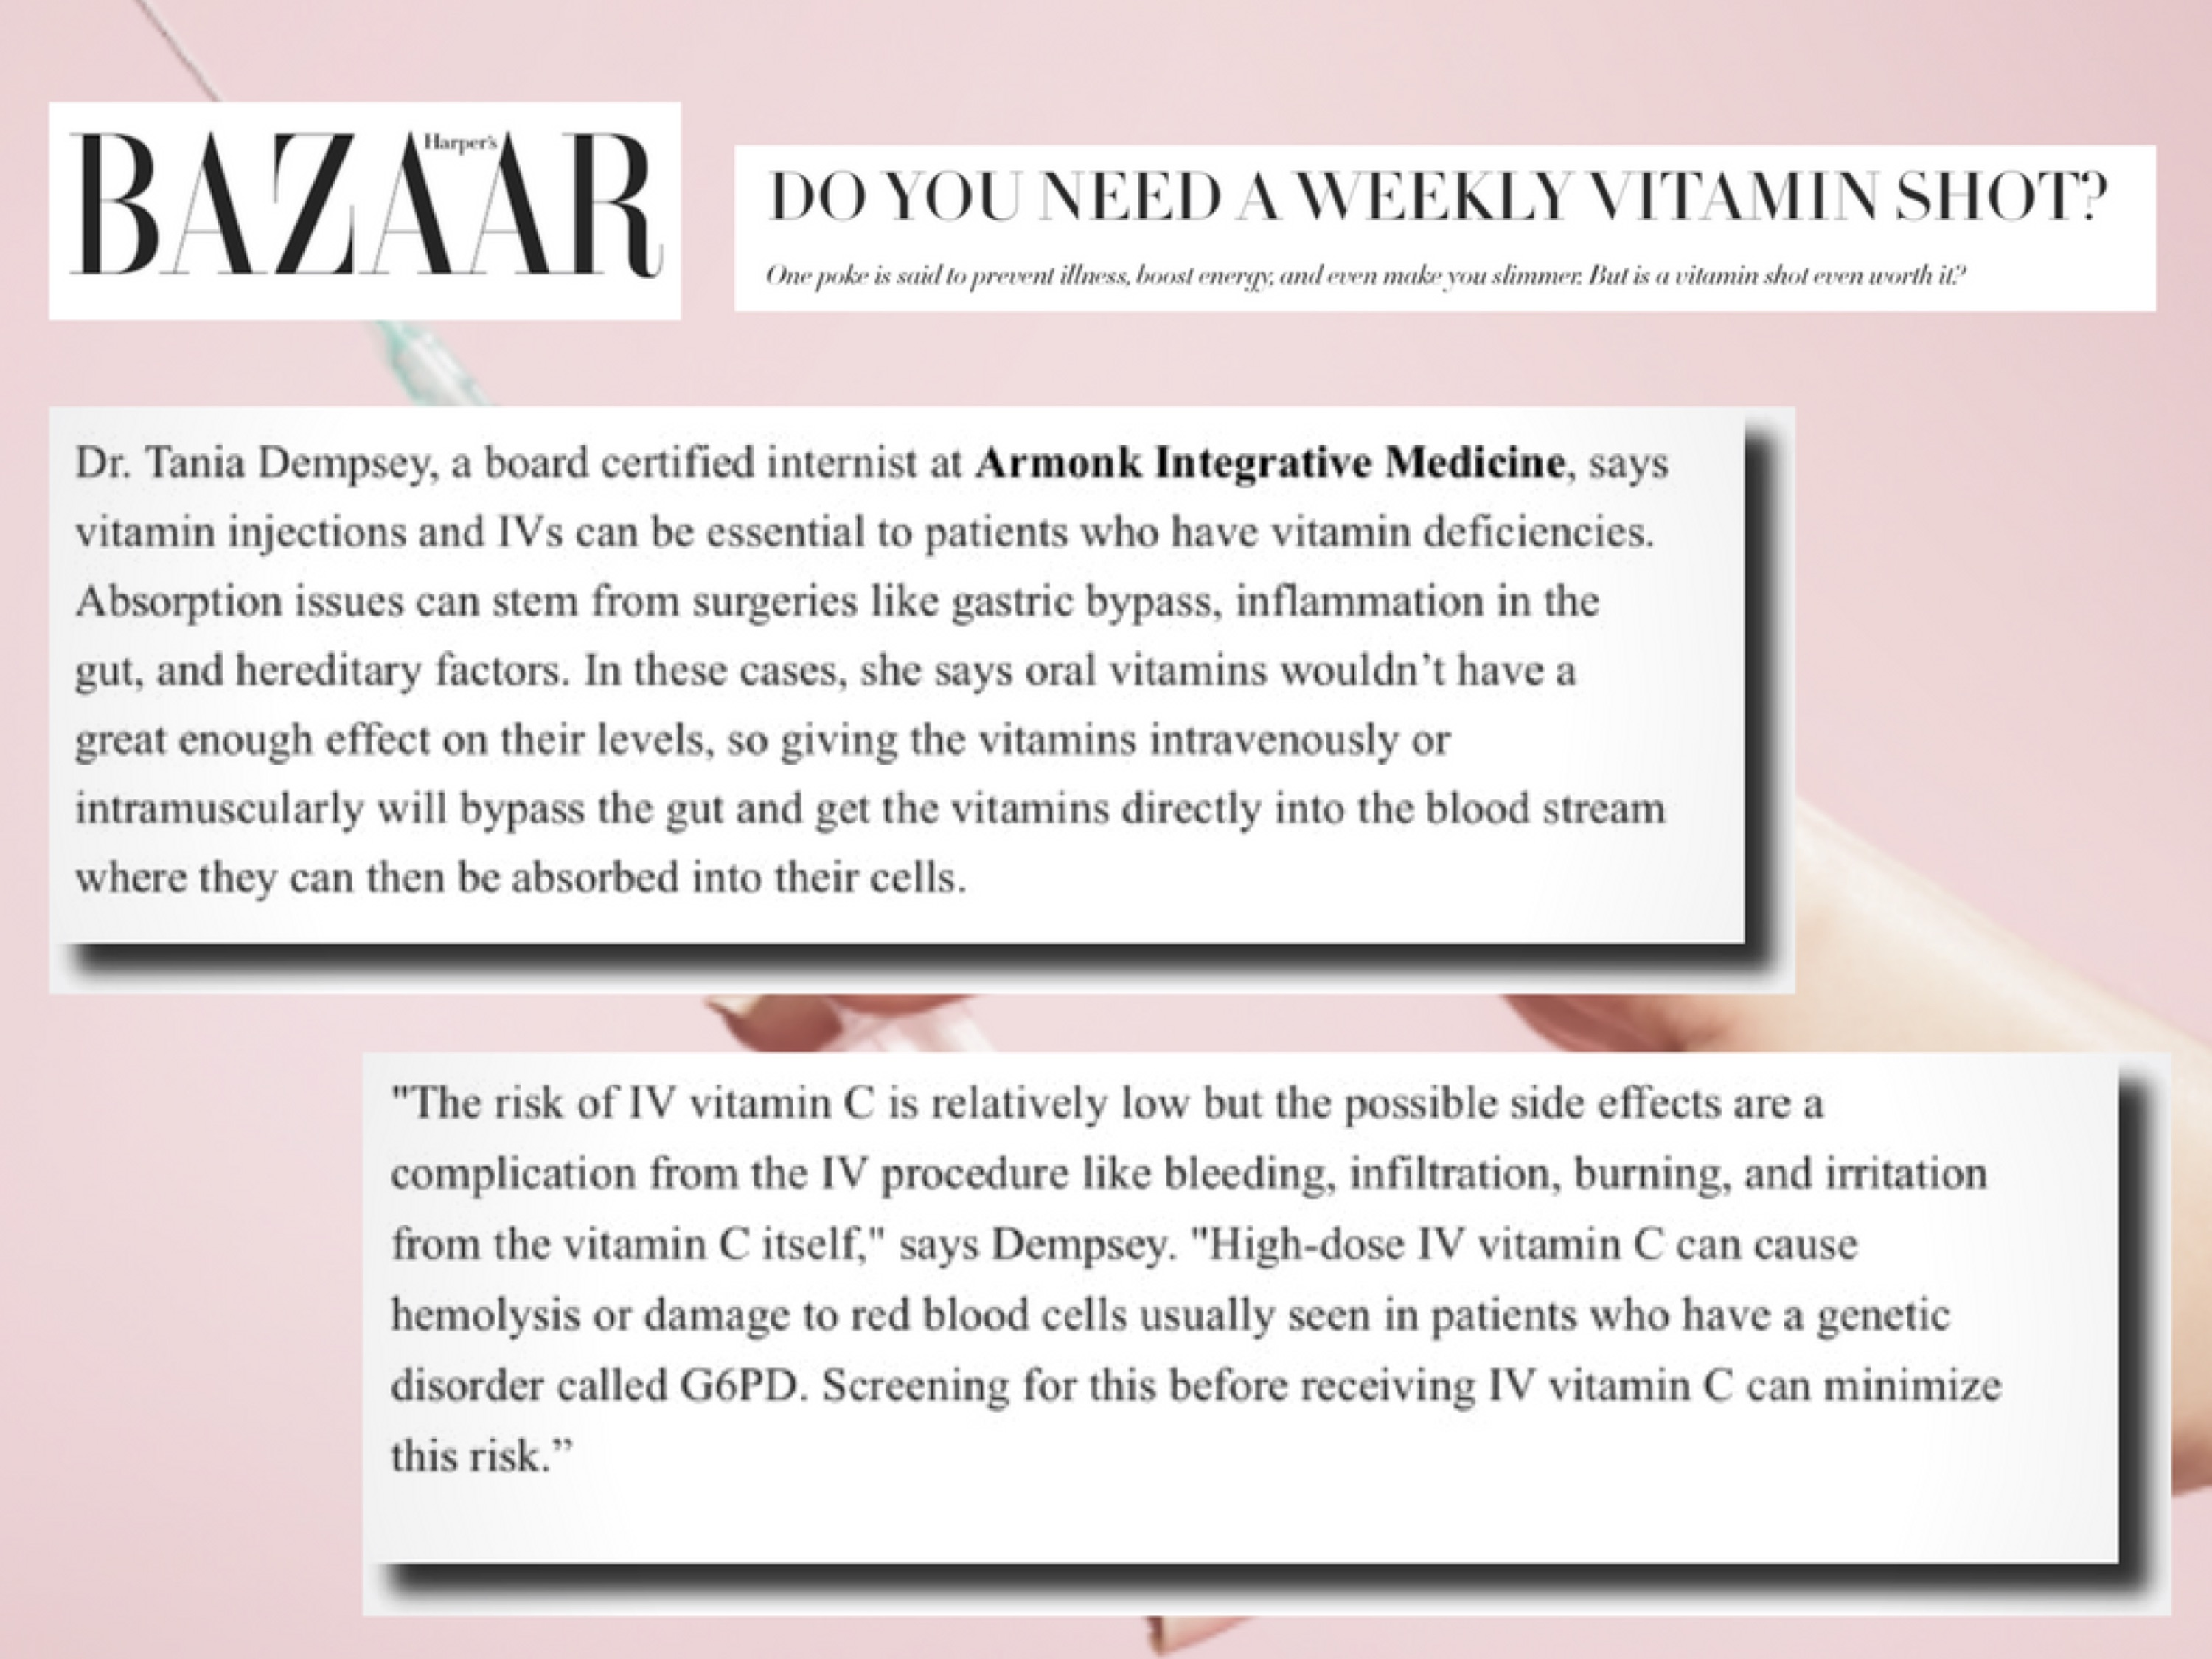 IV Therapy Harpers Bazaar